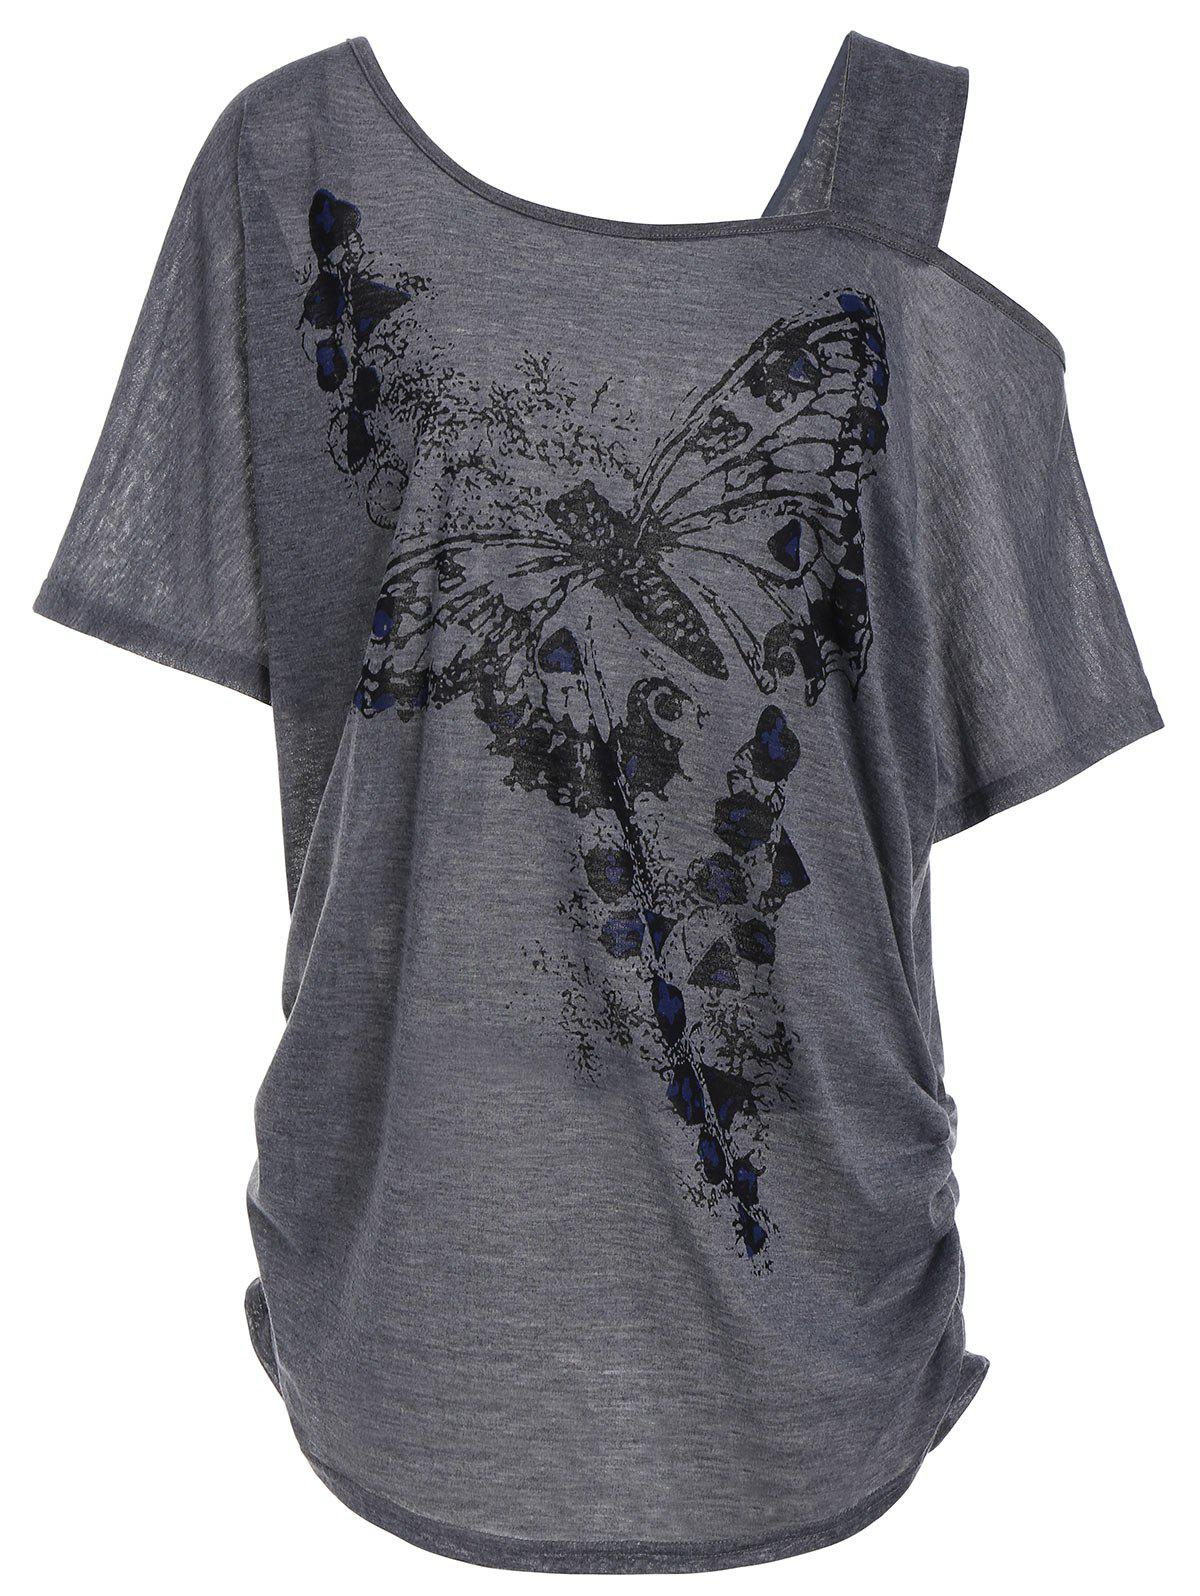 Skew Collar Butterfly Print Plus Size Tunic Top dragonfly print skew collar plus size tee